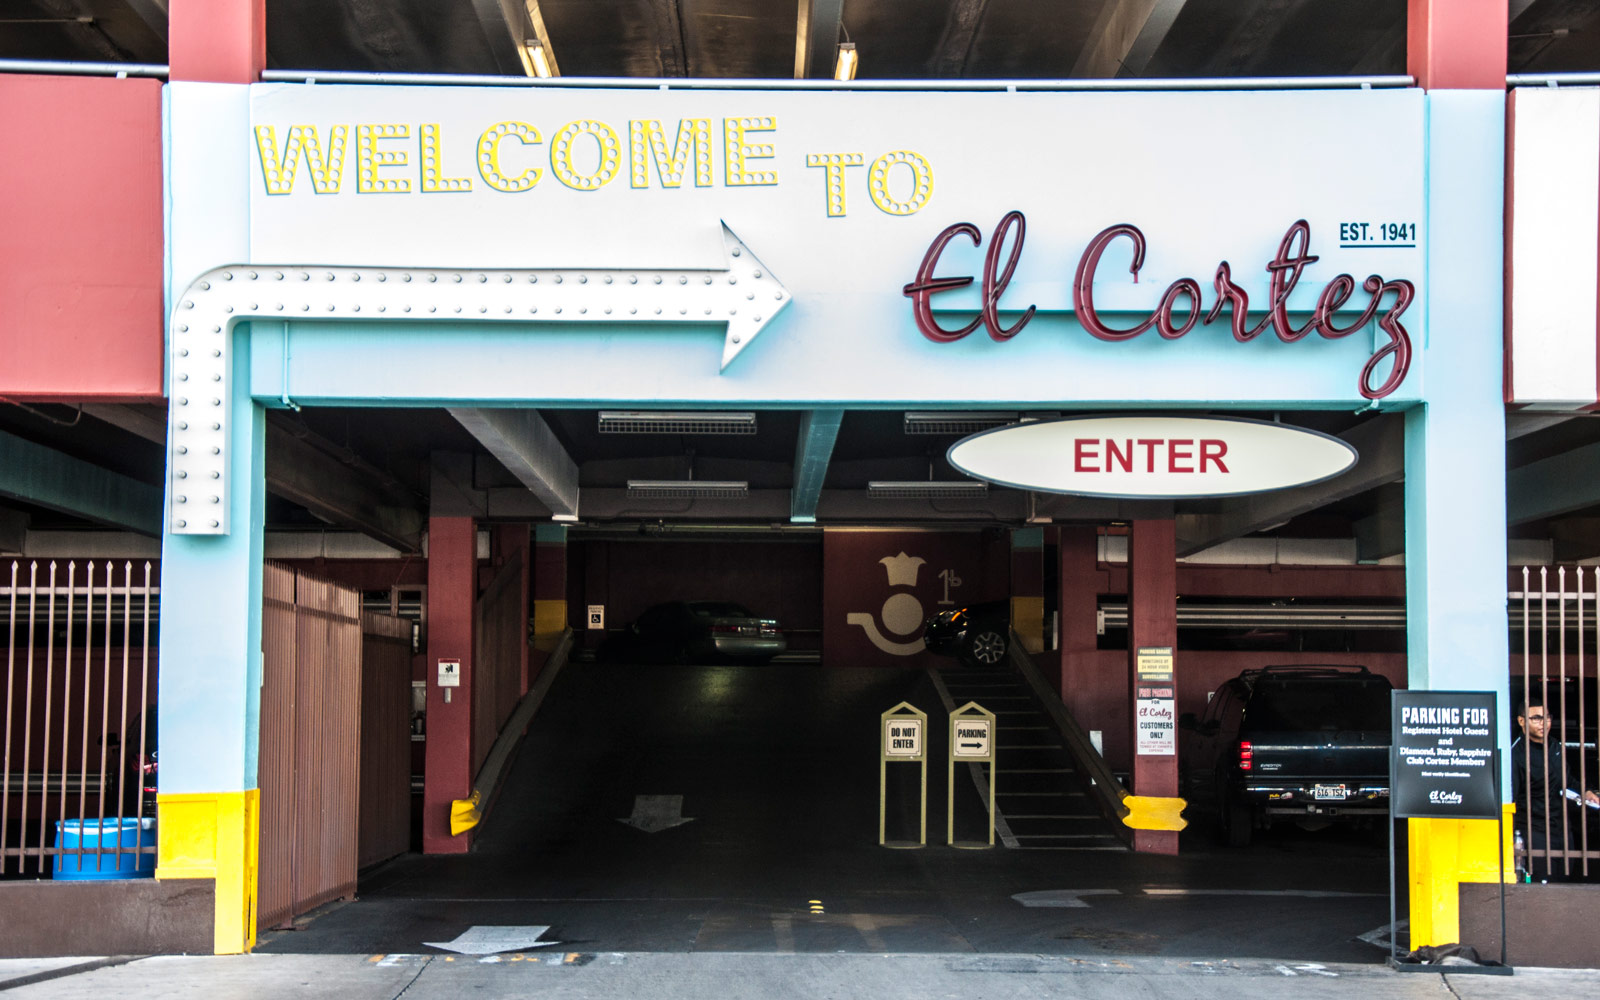 El Cortez parking garage sign